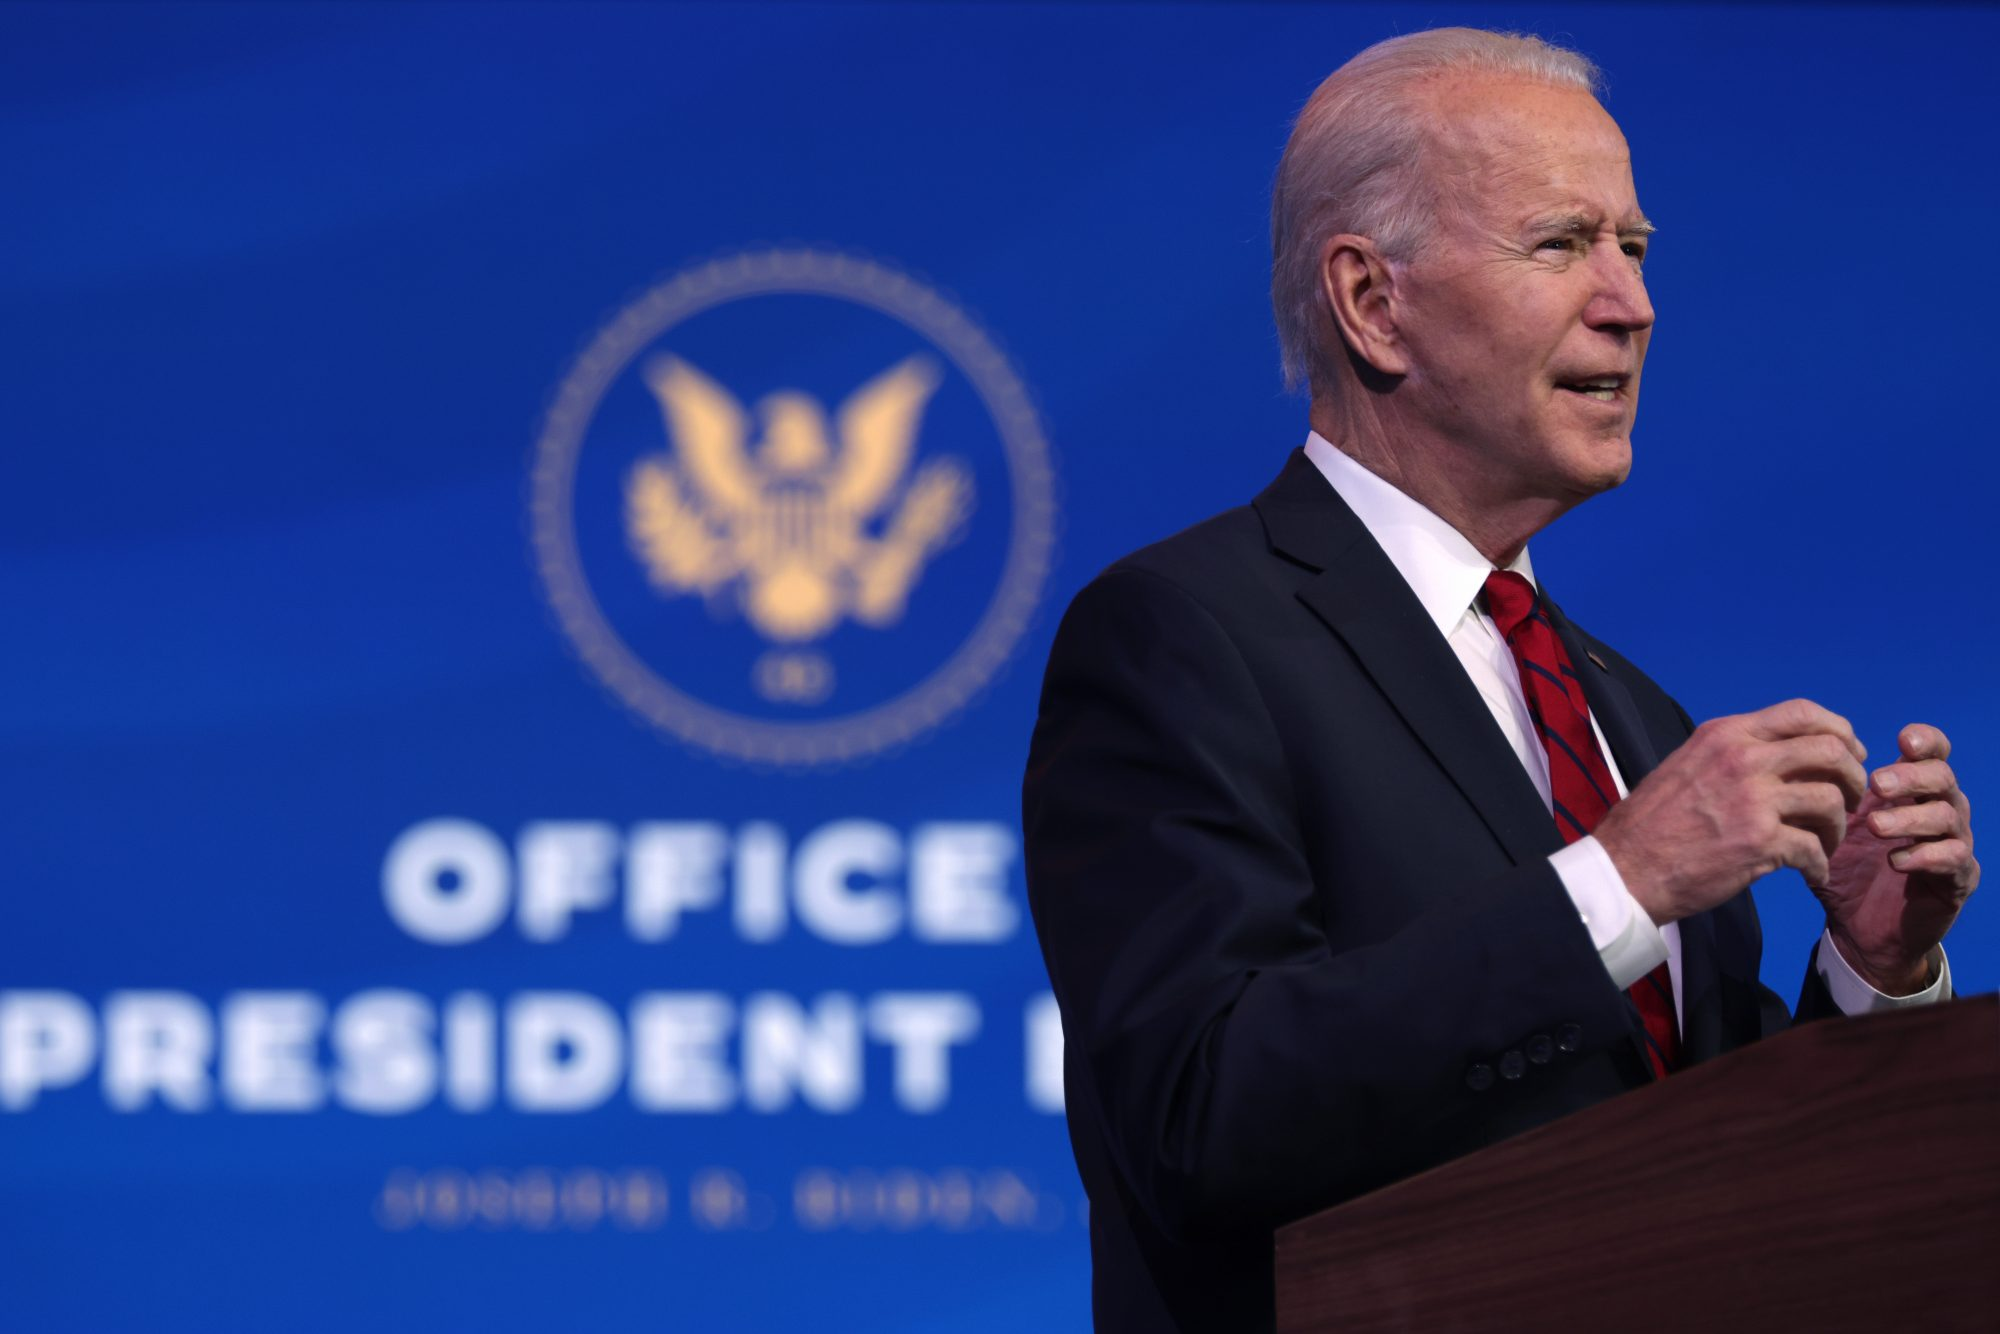 President Joe Biden speaks during day two of laying out his plan on combating the coronavirus in Wilmington, Del., on Jan. 15, 2021, about a week before taking office.